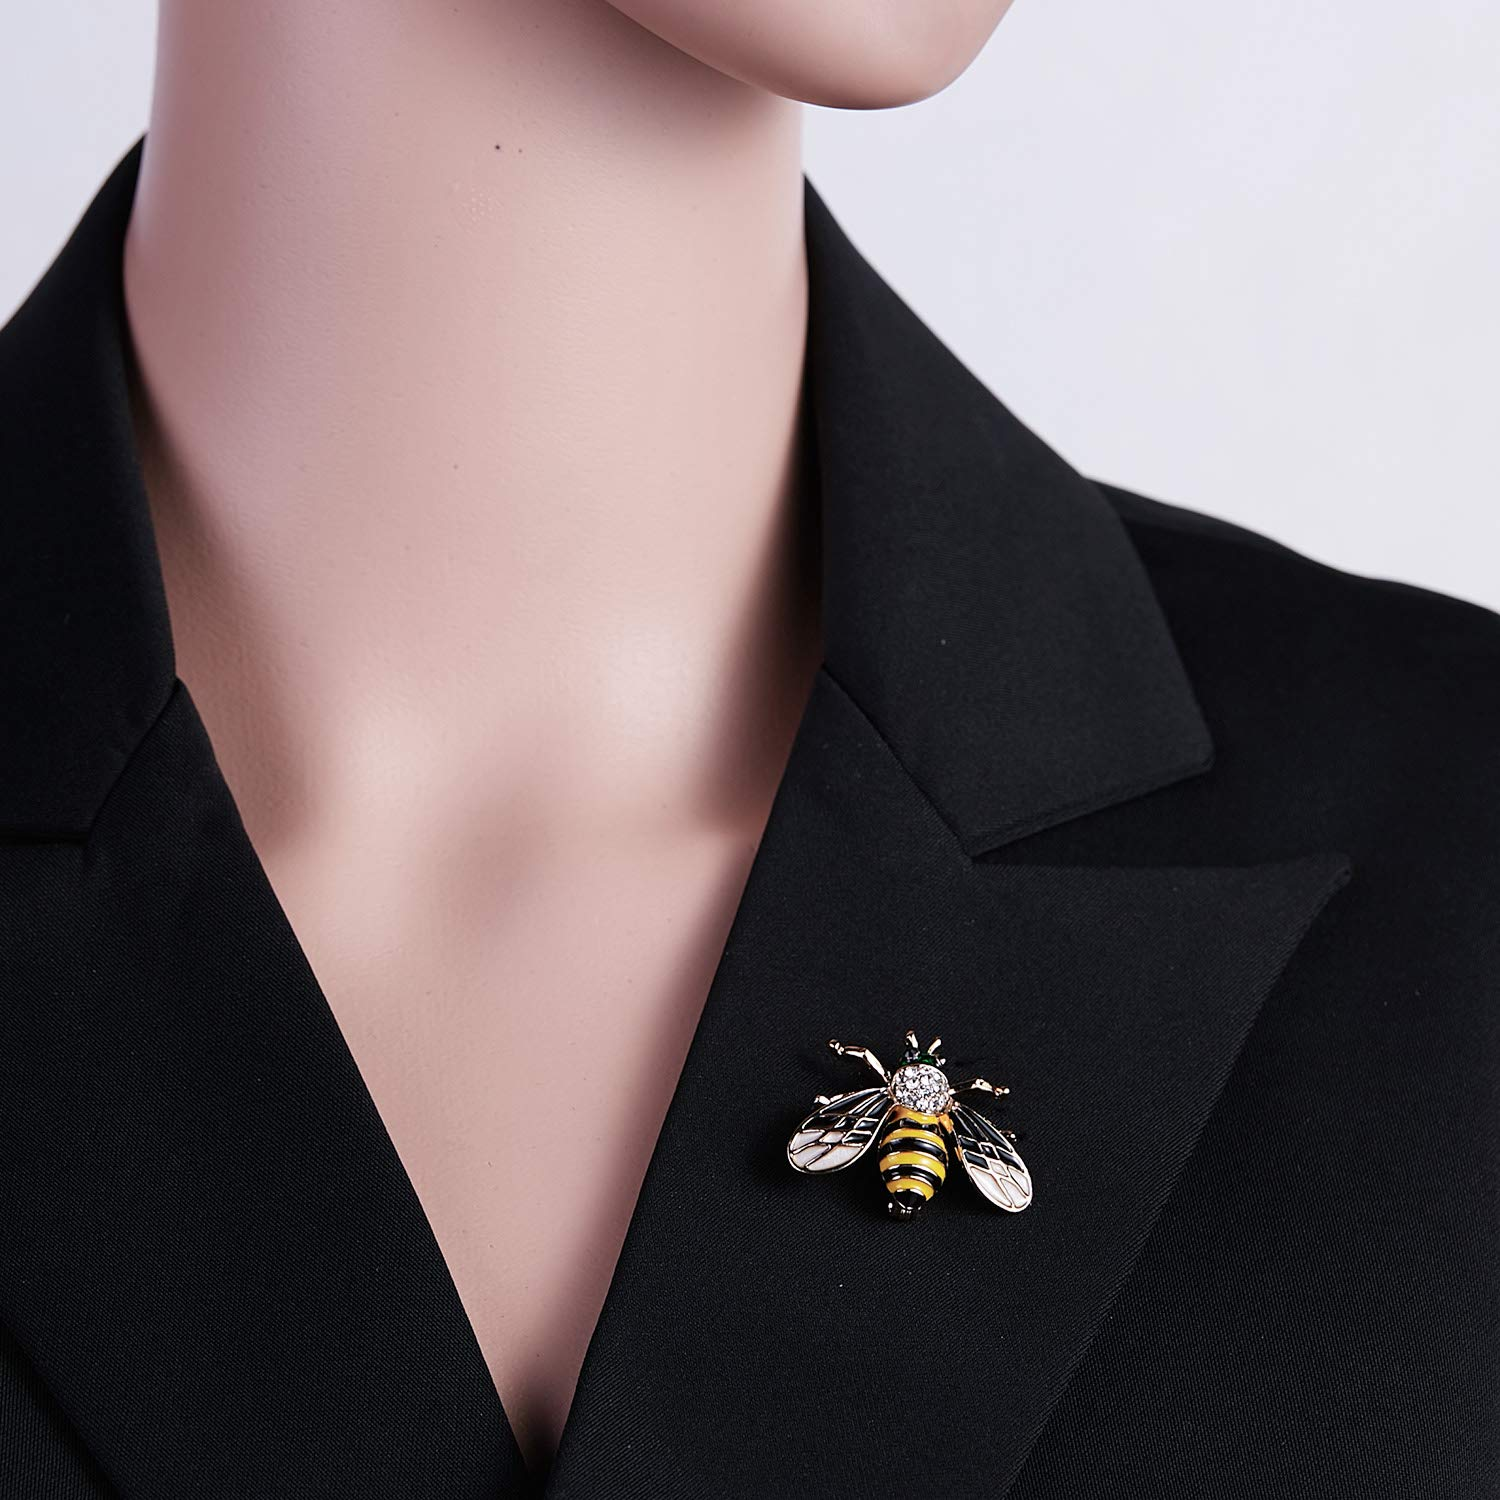 3Pcs Cute Honeybee Enamel Brooches Pin Antique Crystal Rhinestones Bee Scarf Clips for Women Girls (Style5) by beemean (Image #4)